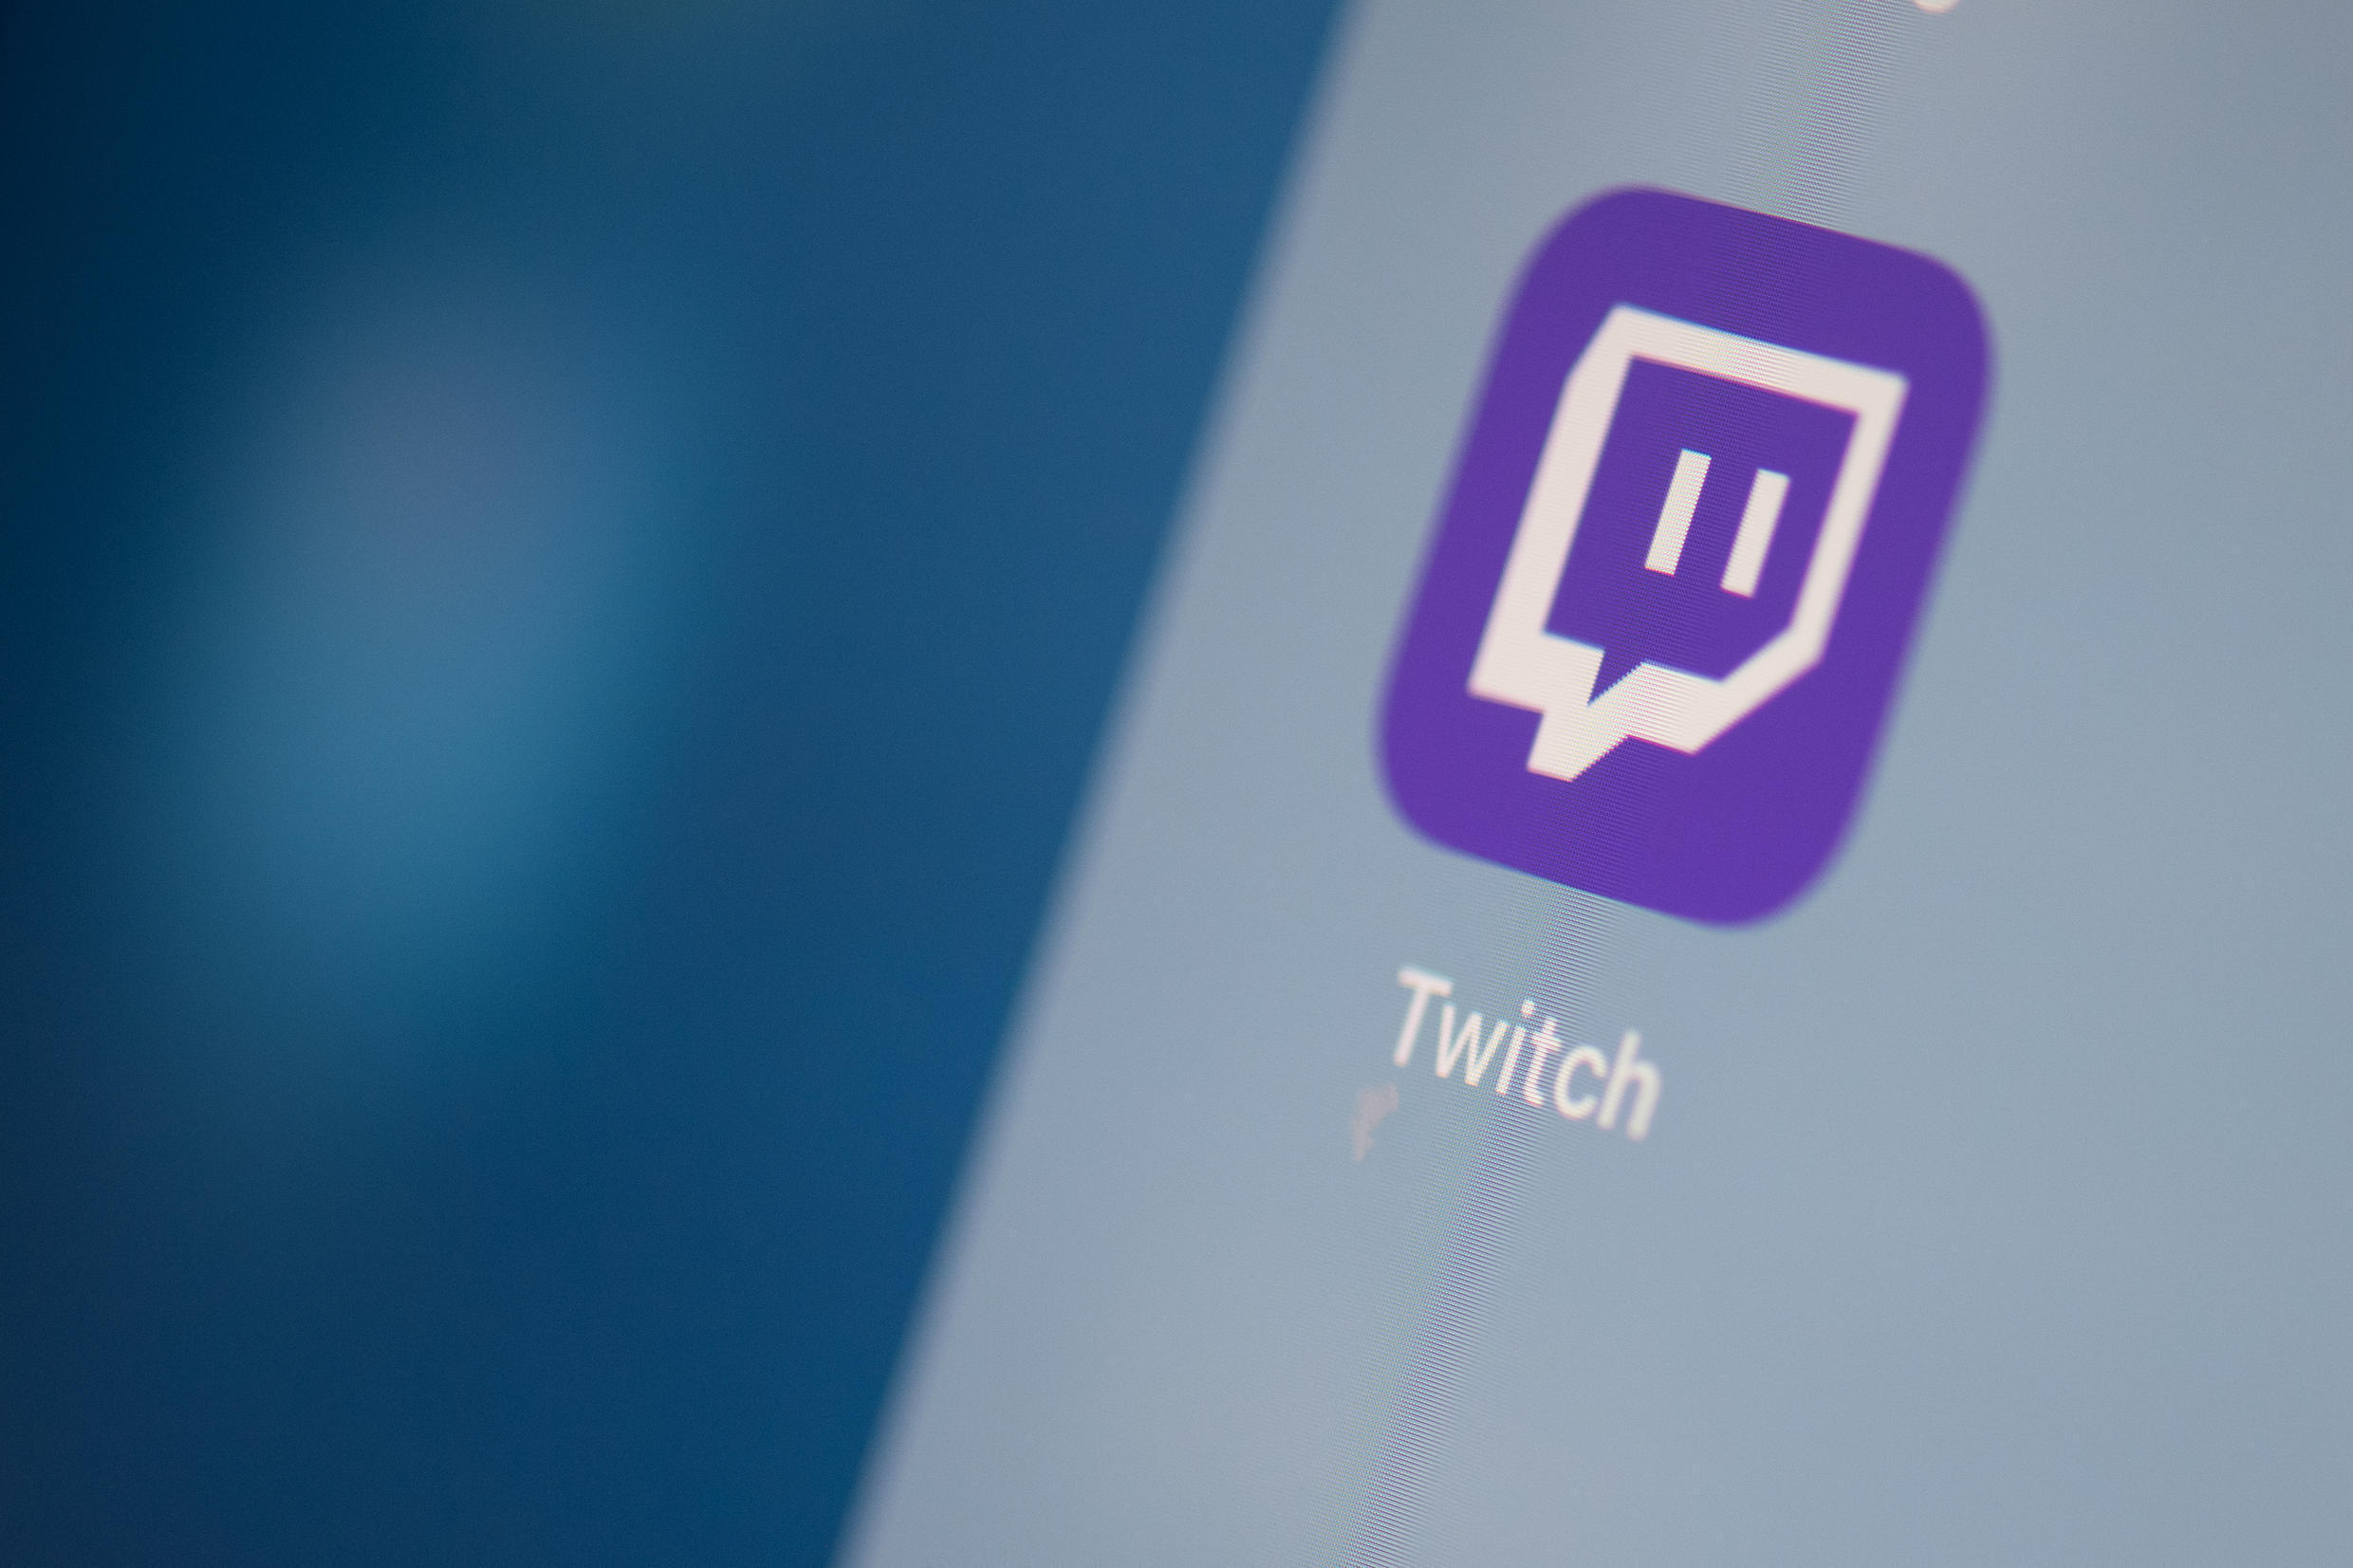 Twitch foot